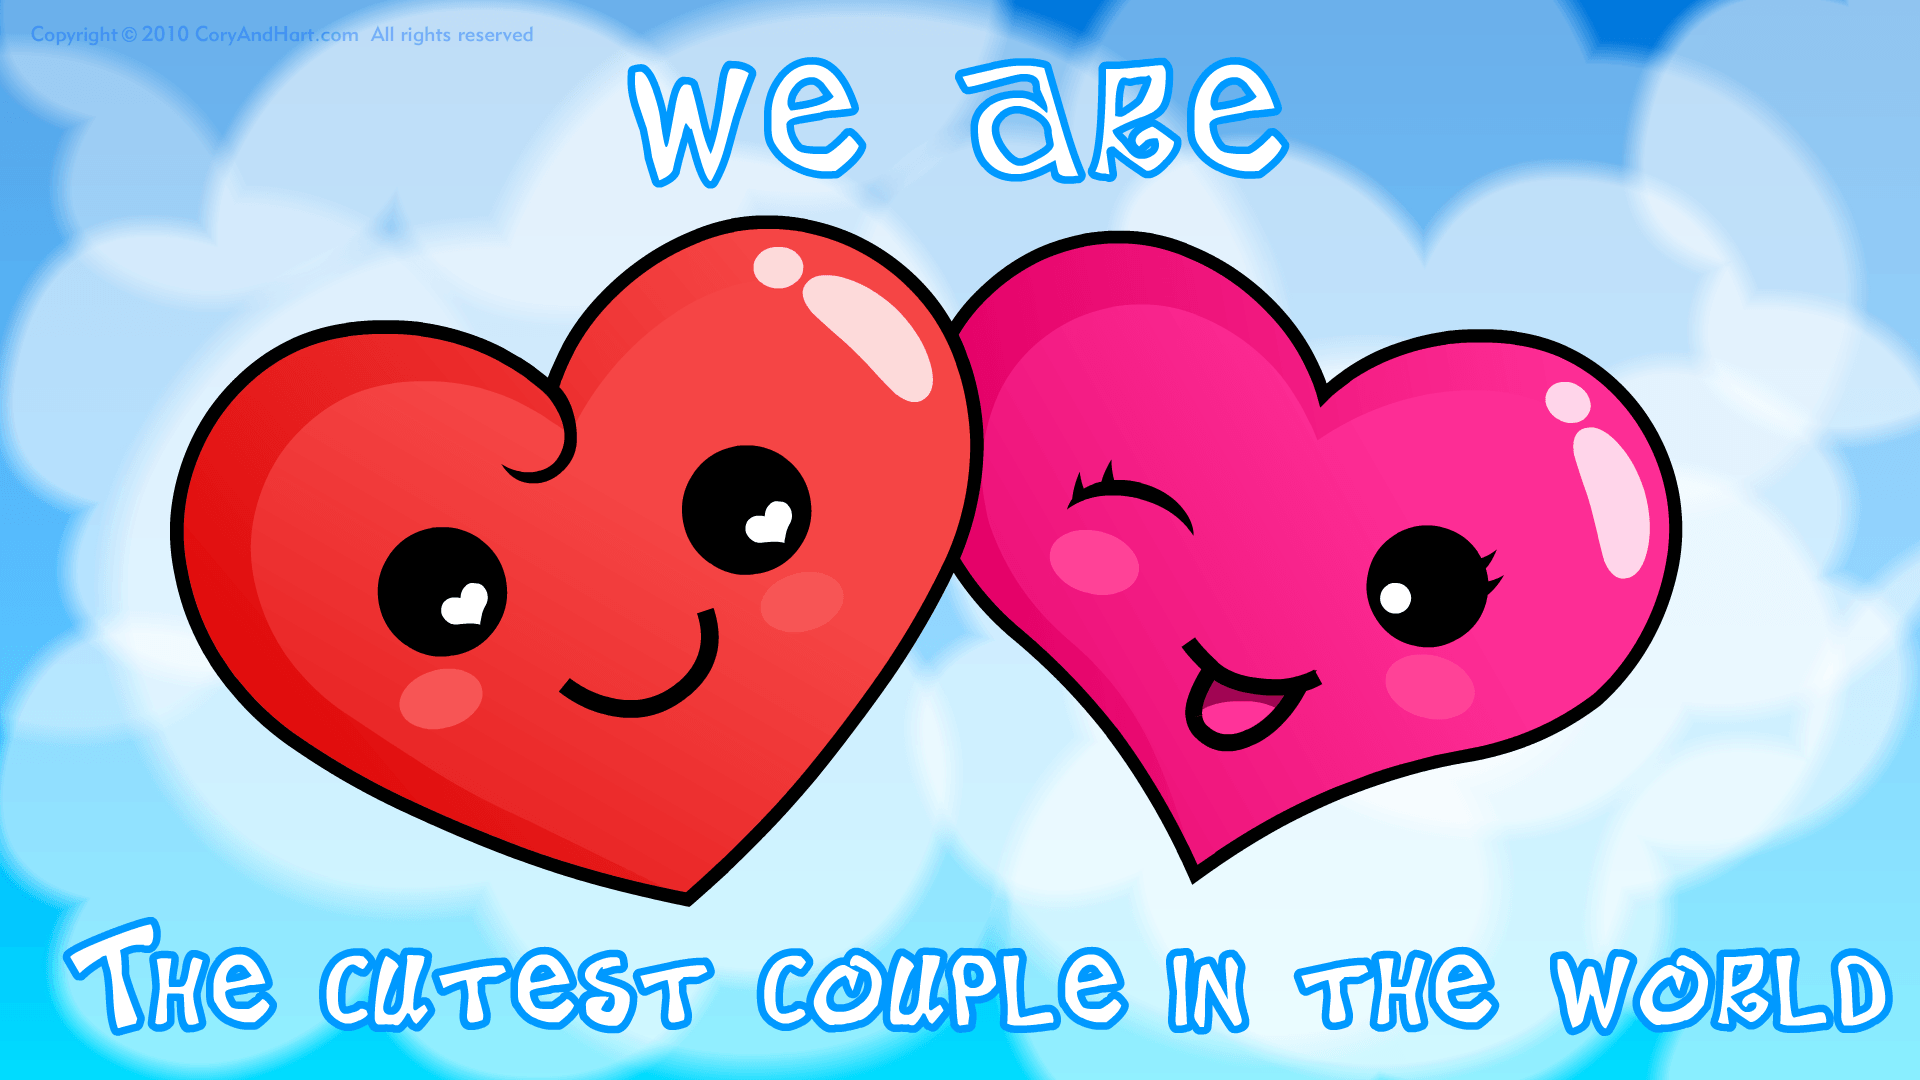 Love Heart couple Hd Wallpaper : Free Love Wallpapers Gallery - Wallpaper cave